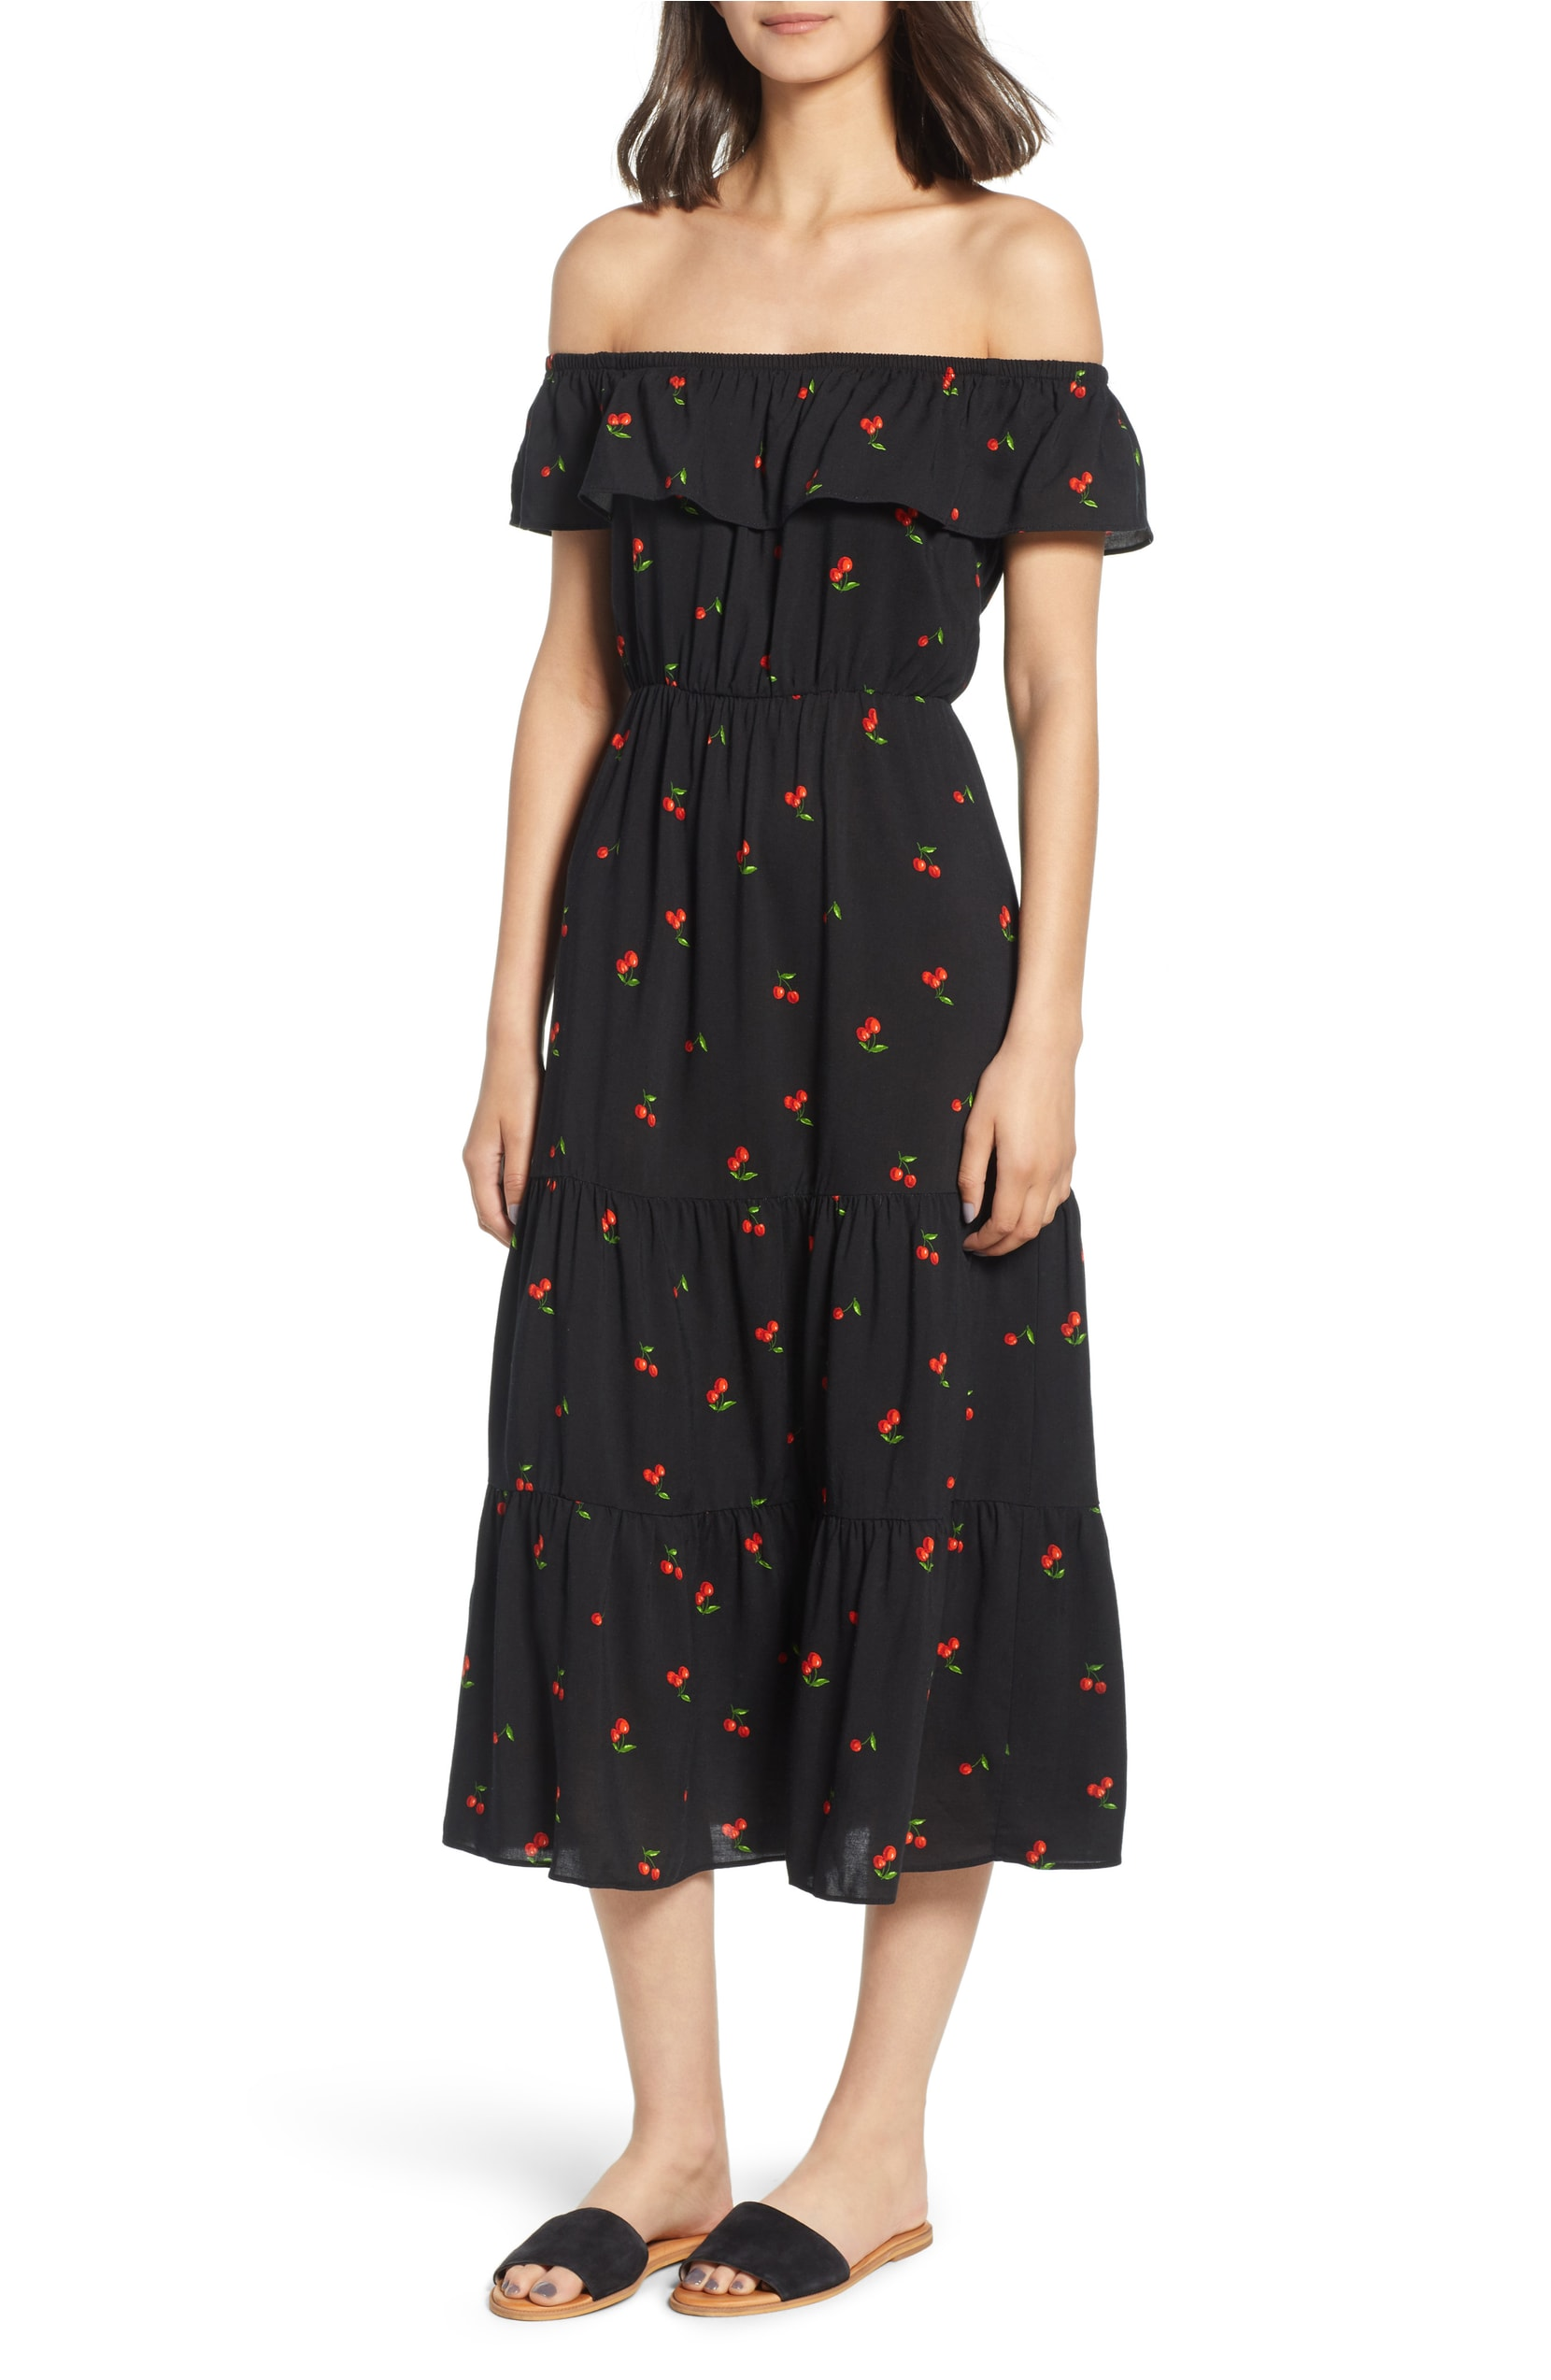 Cherry Print Off the Shoulder Black Maxi Dress